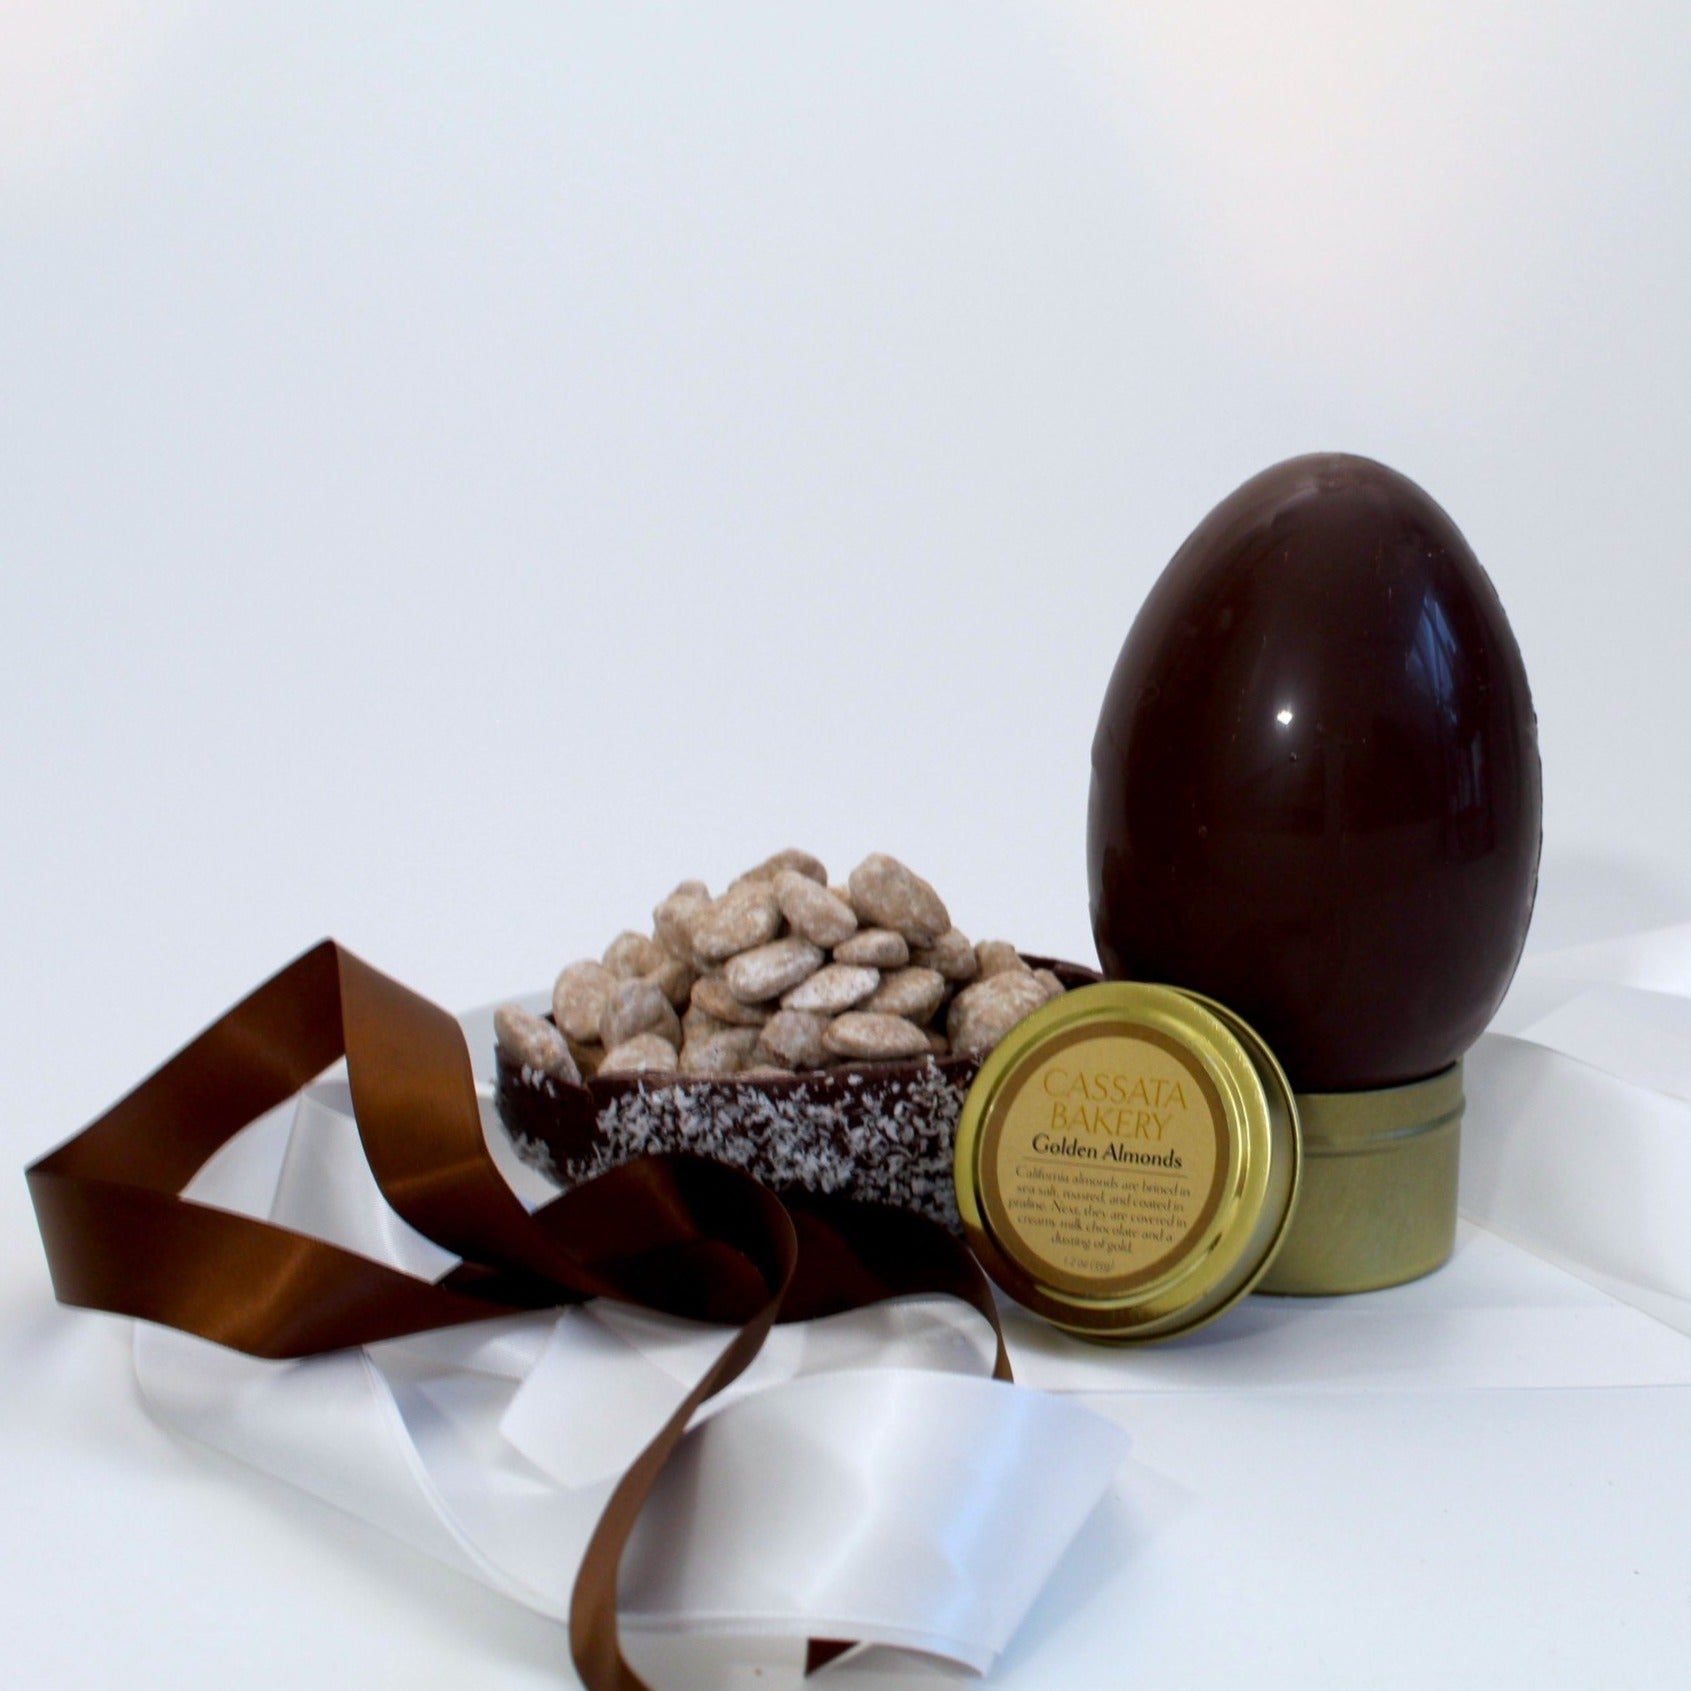 Cassata Bakery Golden Egg 61% dark chocolated filled with our signature Golden Almonds